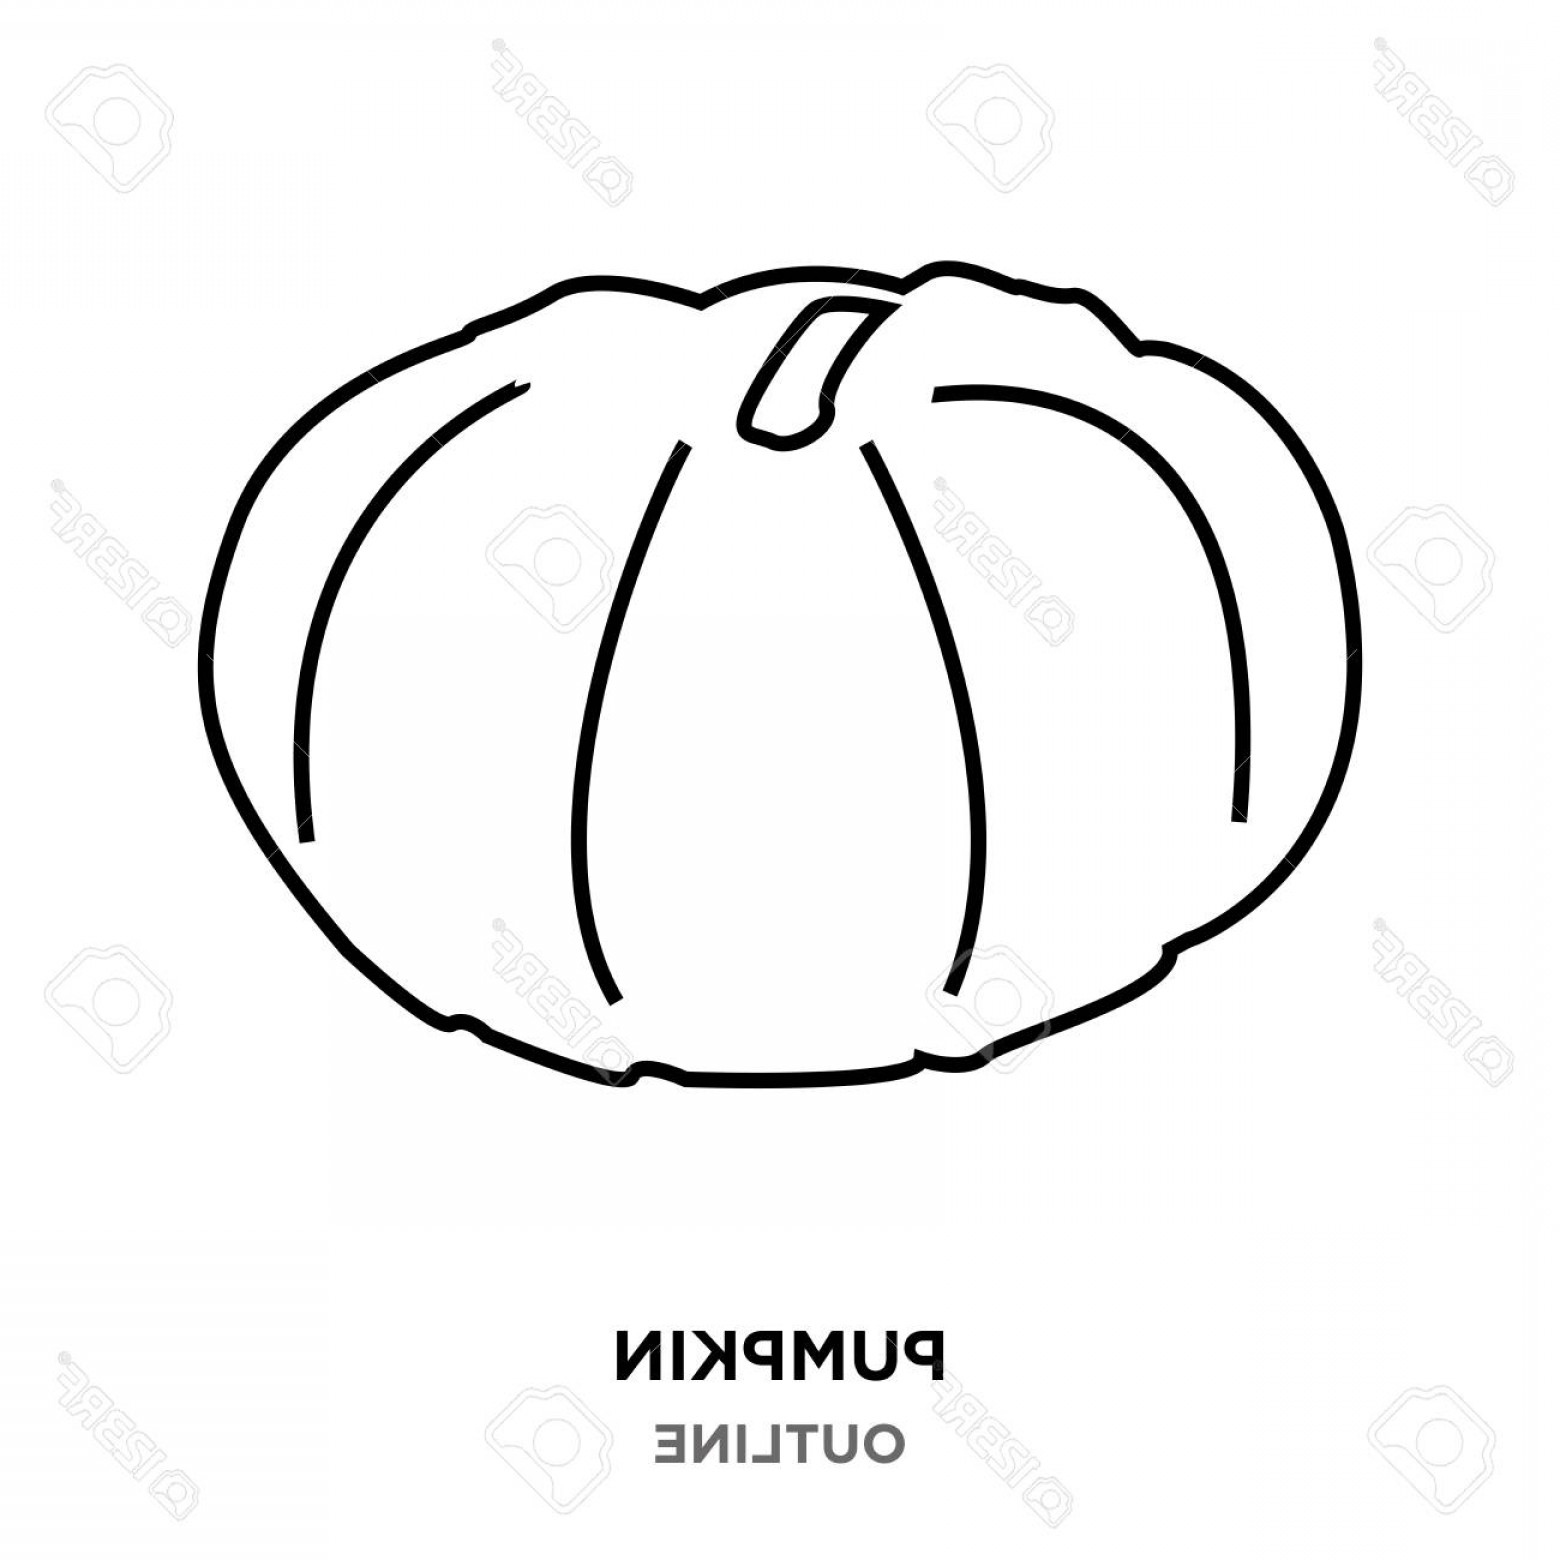 Pumpkin Outline Vector Art: Photostock Vector A Pumpkin Outline Images On White Background